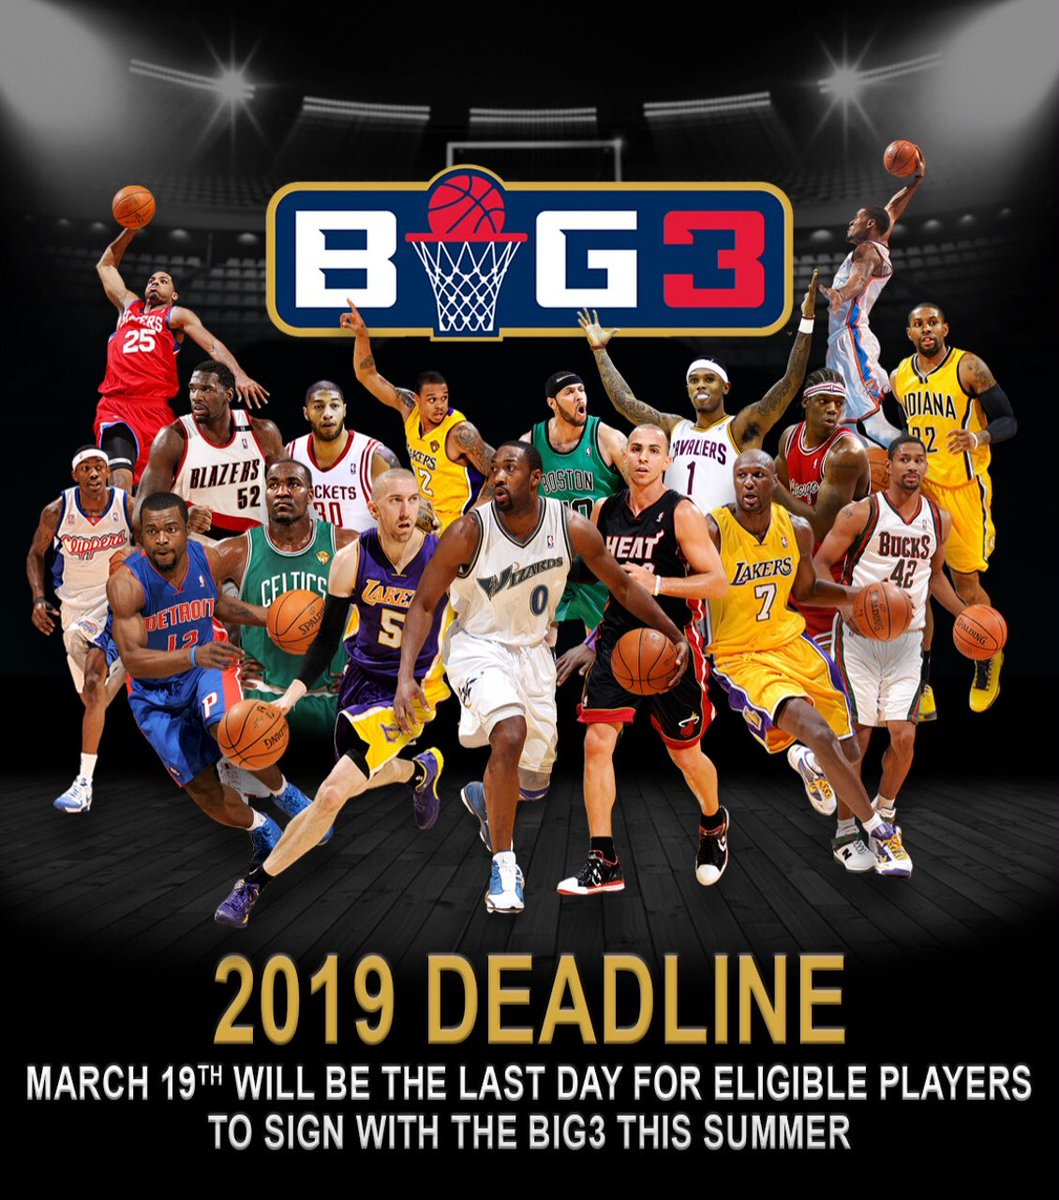 Time to decide. Are you still a Baller or do you just wanna stay home and get fat. #big3season3 https://t.co/b2iheUCDUc